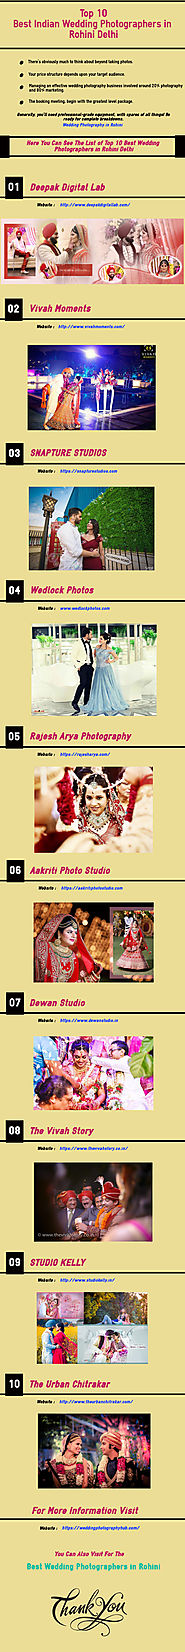 Top 10 Best Indian Wedding Photographers in Rohini Delhi | Infographic